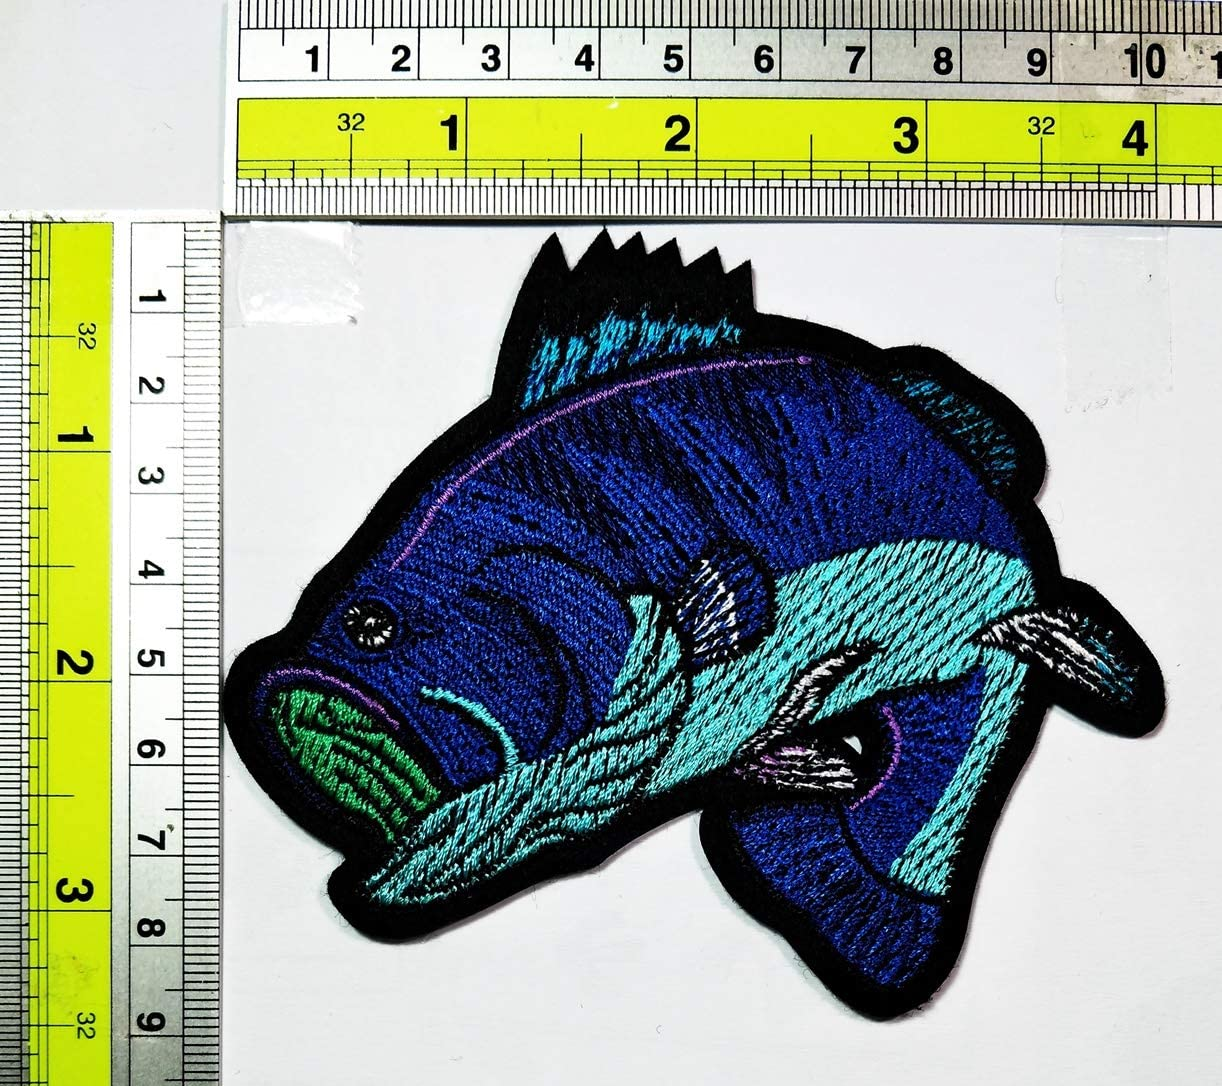 PARITA Green Lemon Flavored Ice Cream Fruit Cartoon DIY Sewing on Iron on Embroidered Applique Patch Emblem Fabric Hat Bag Backpacks Clothing or Reward Gift Kids Adults